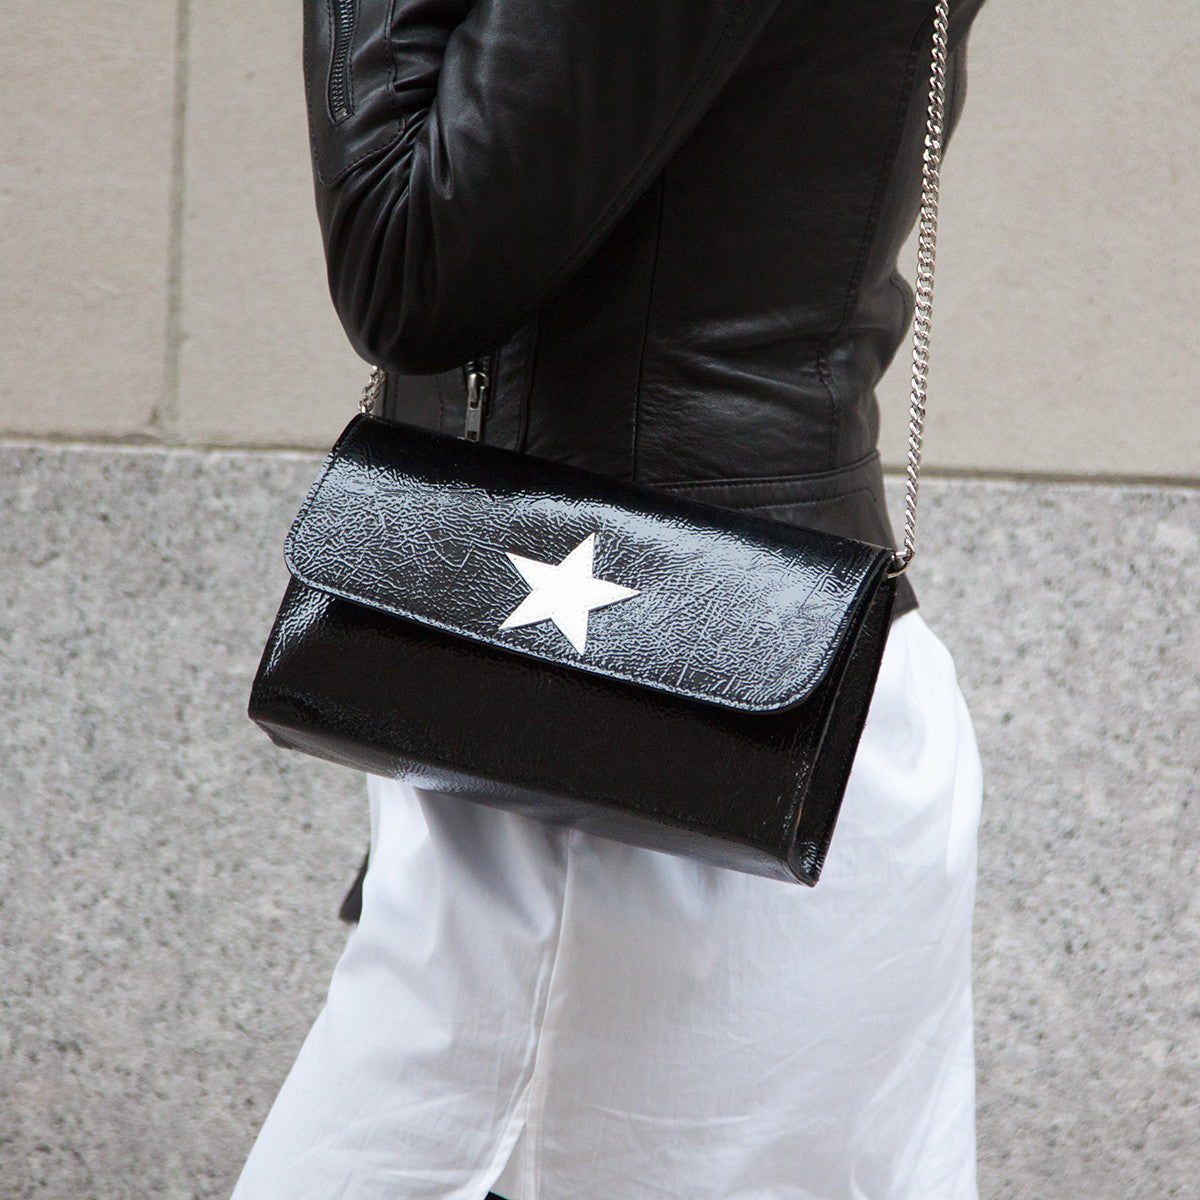 Mich Shoulder Bag Cracked Black Patent Leather w/ Gold Star - erindananewyork - 2